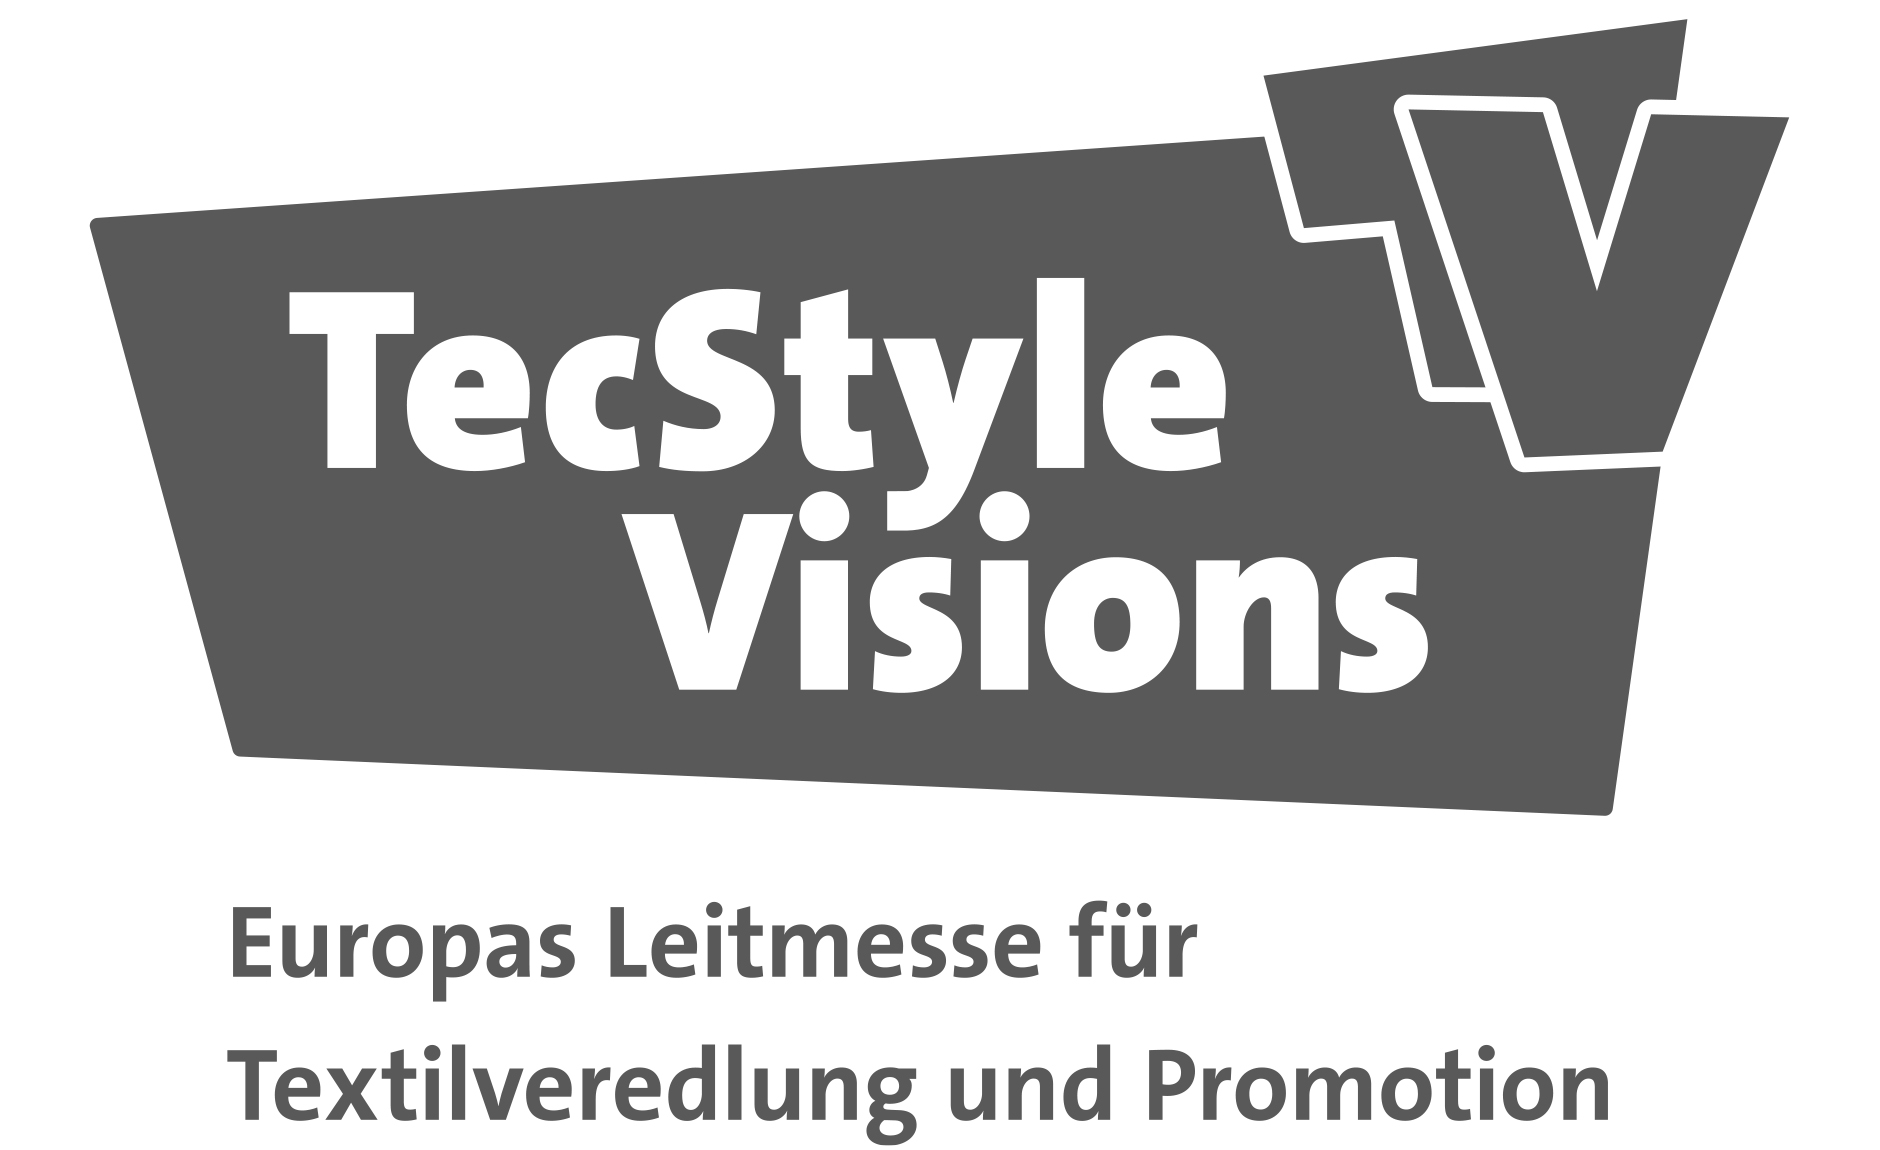 TV Tecstyle Visions